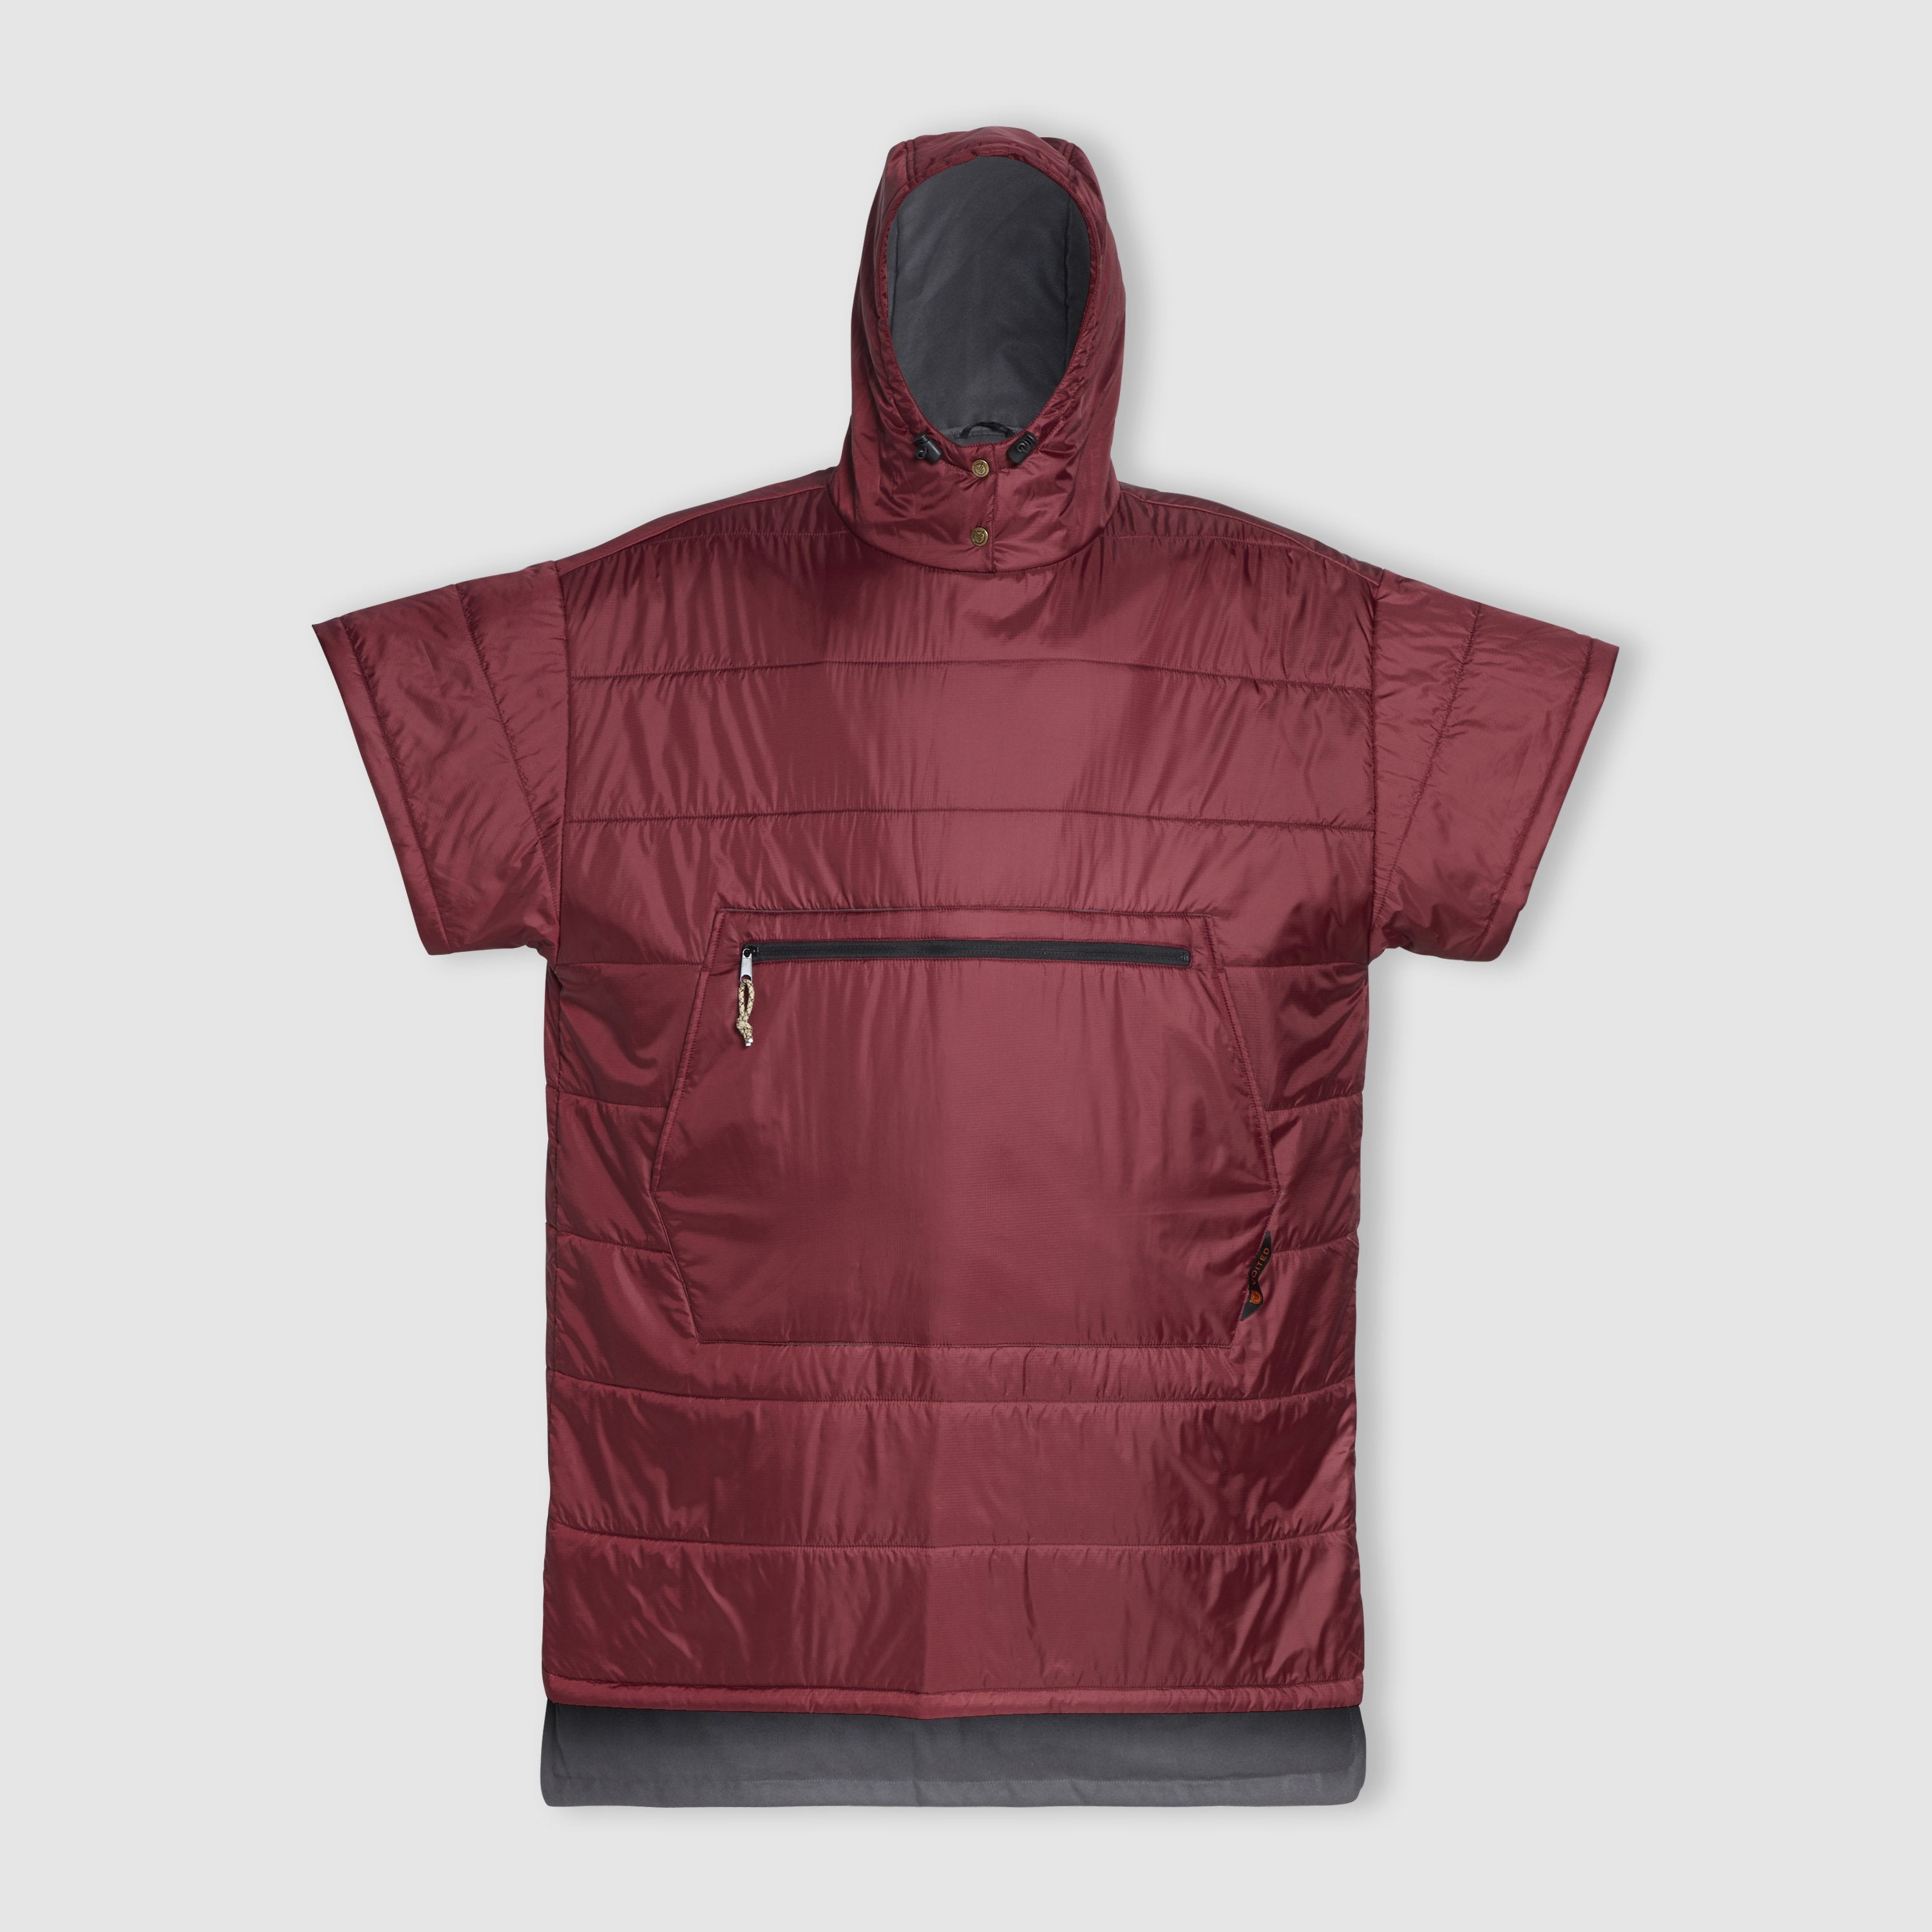 Voited Insulated Outdoor Poncho - Oxblood image 2